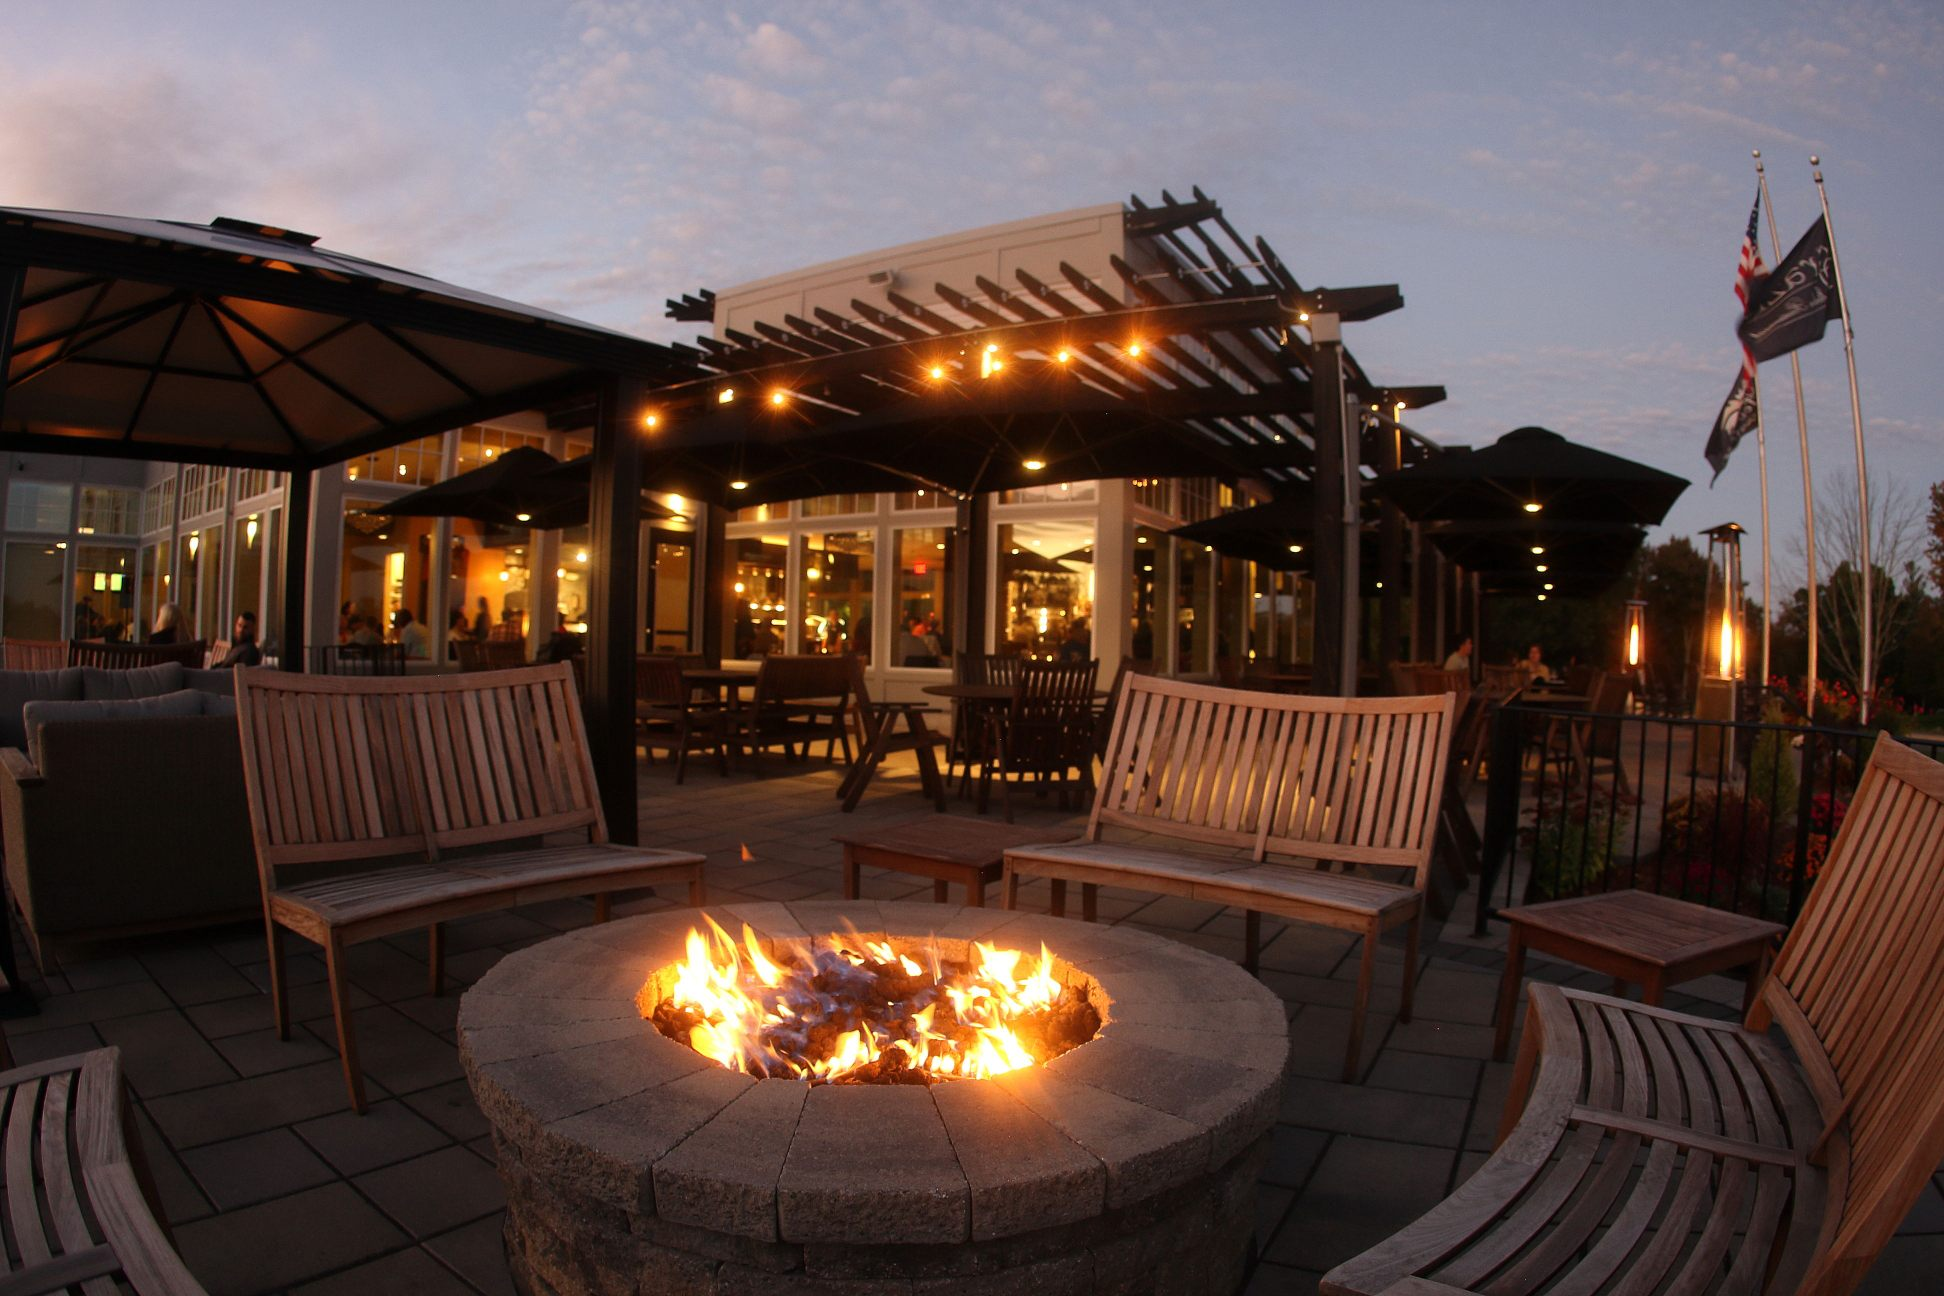 Make the most of your outdoor space this winter